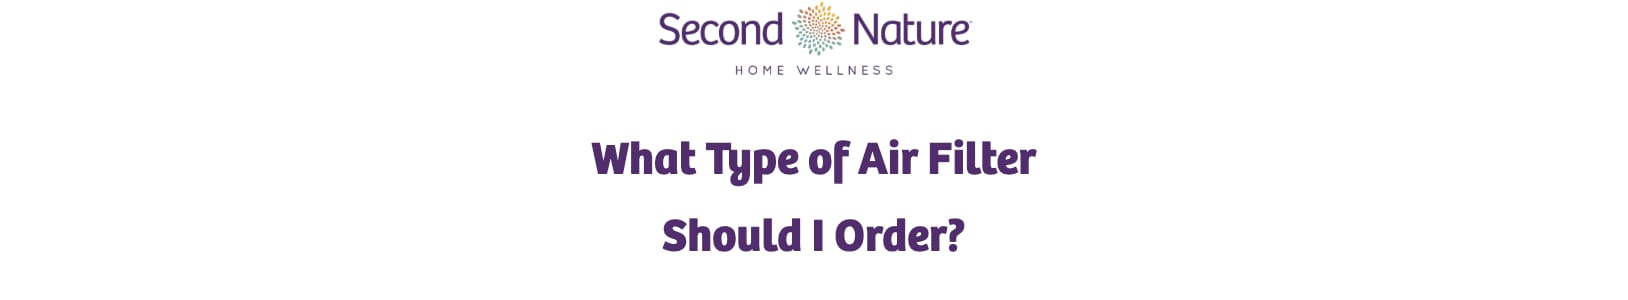 Air filters come in many types, grades, qualities, and sizes.